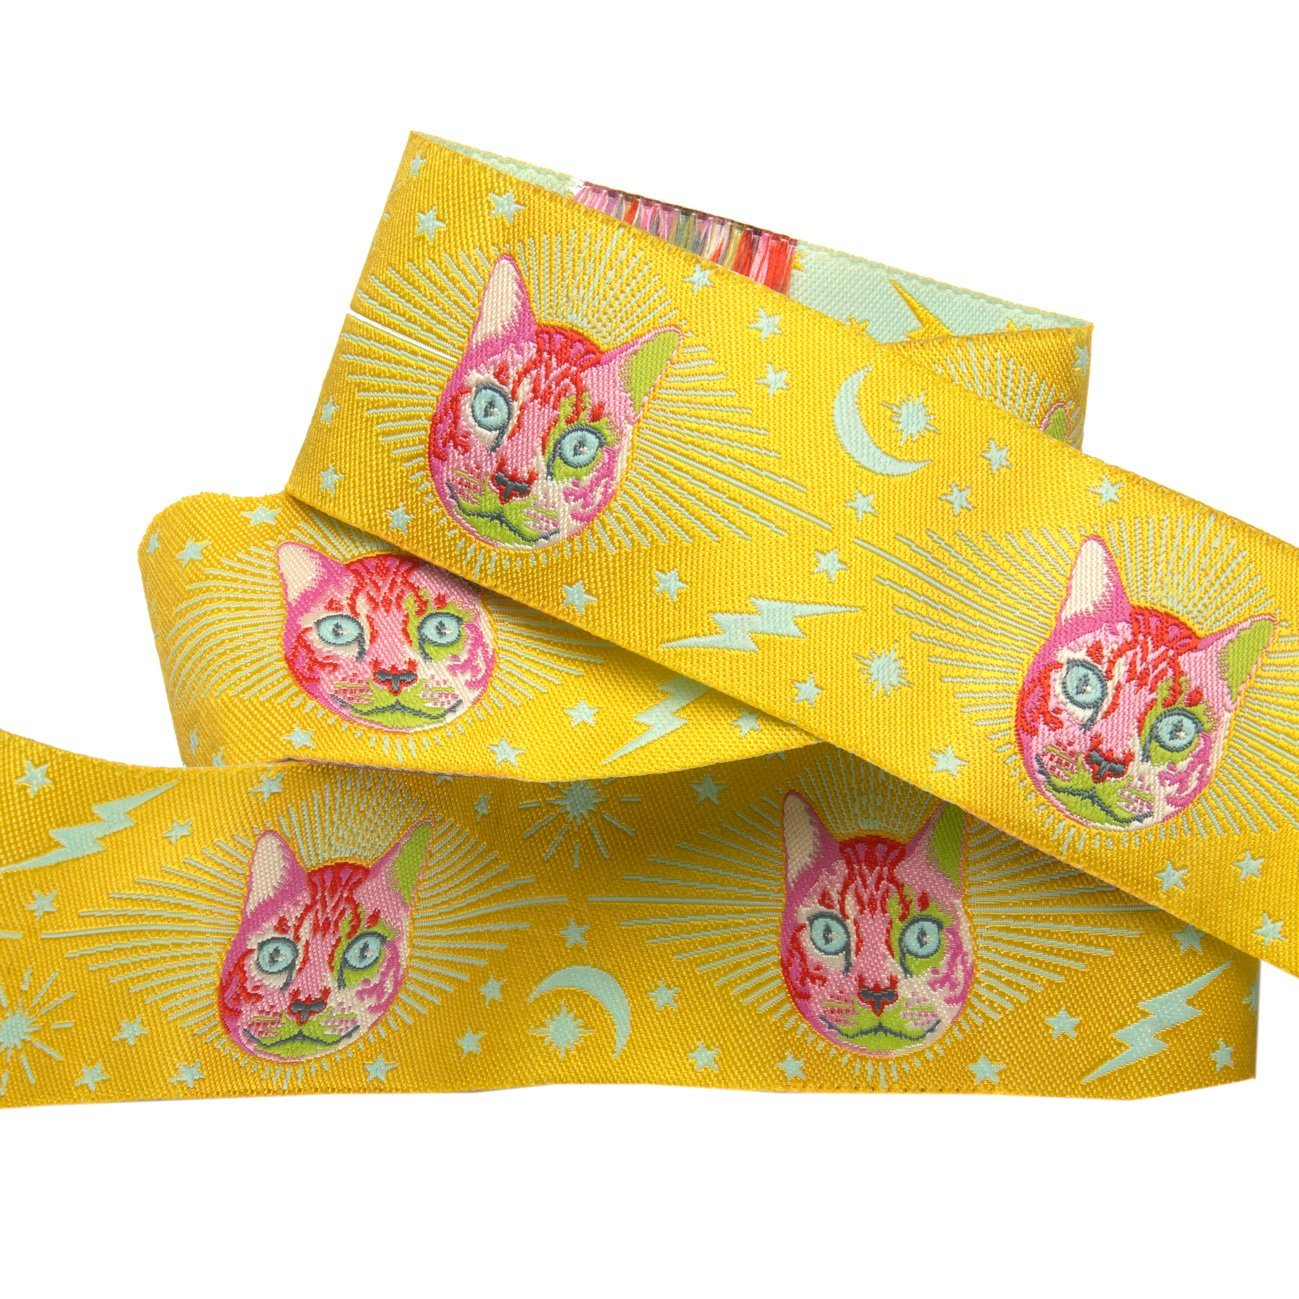 Renaissance Ribbons -Tula Pink Curiouser - Cheshire Cat on yellow-1 1/2